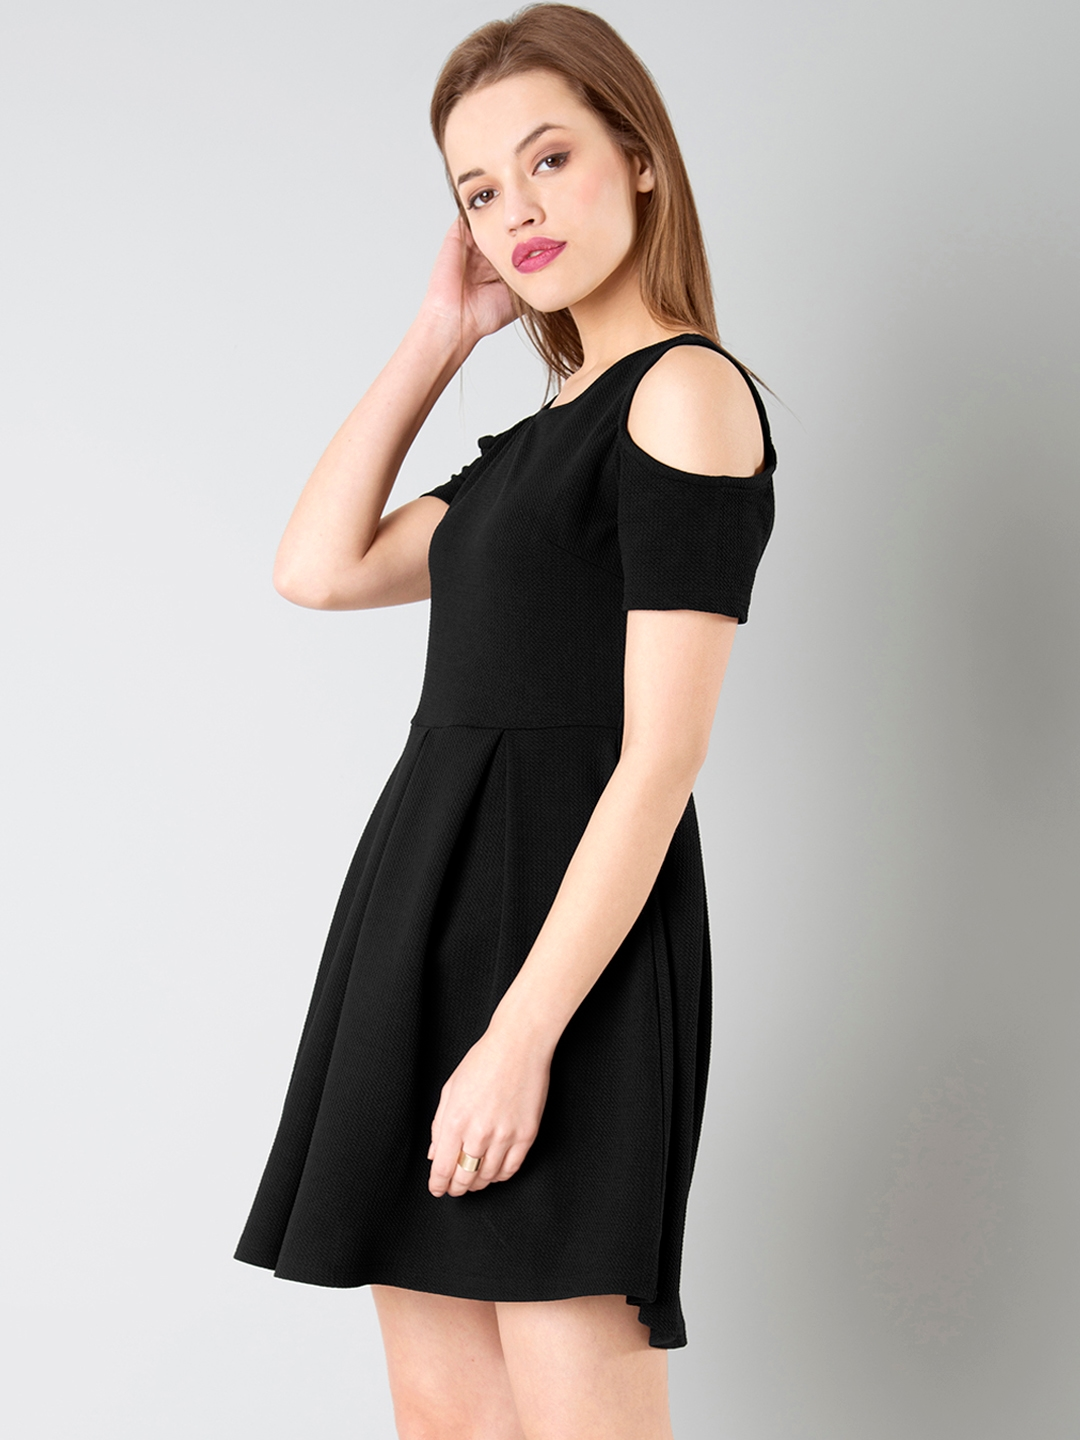 3f8e409ecf31 Buy FabAlley Women Black Solid Cold Shoulder Fit   Flare Dress ...